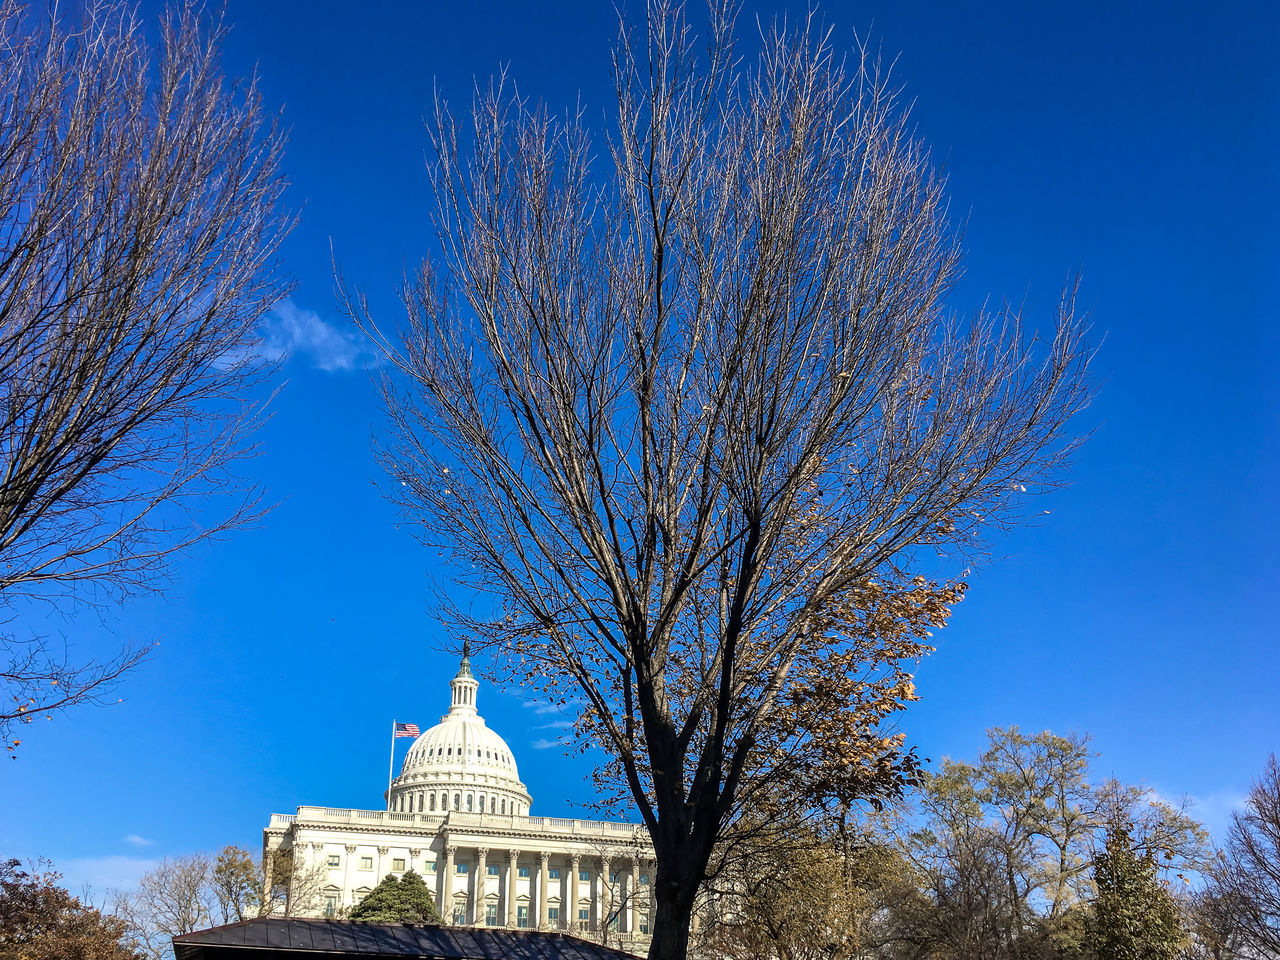 Architecture Blue Building Exterior Capitol Hill City Cityscape Clear Sky Day Democracy Dome Donald Trump Inauguration  No People Outdoors Sky Travel Destinations Tree